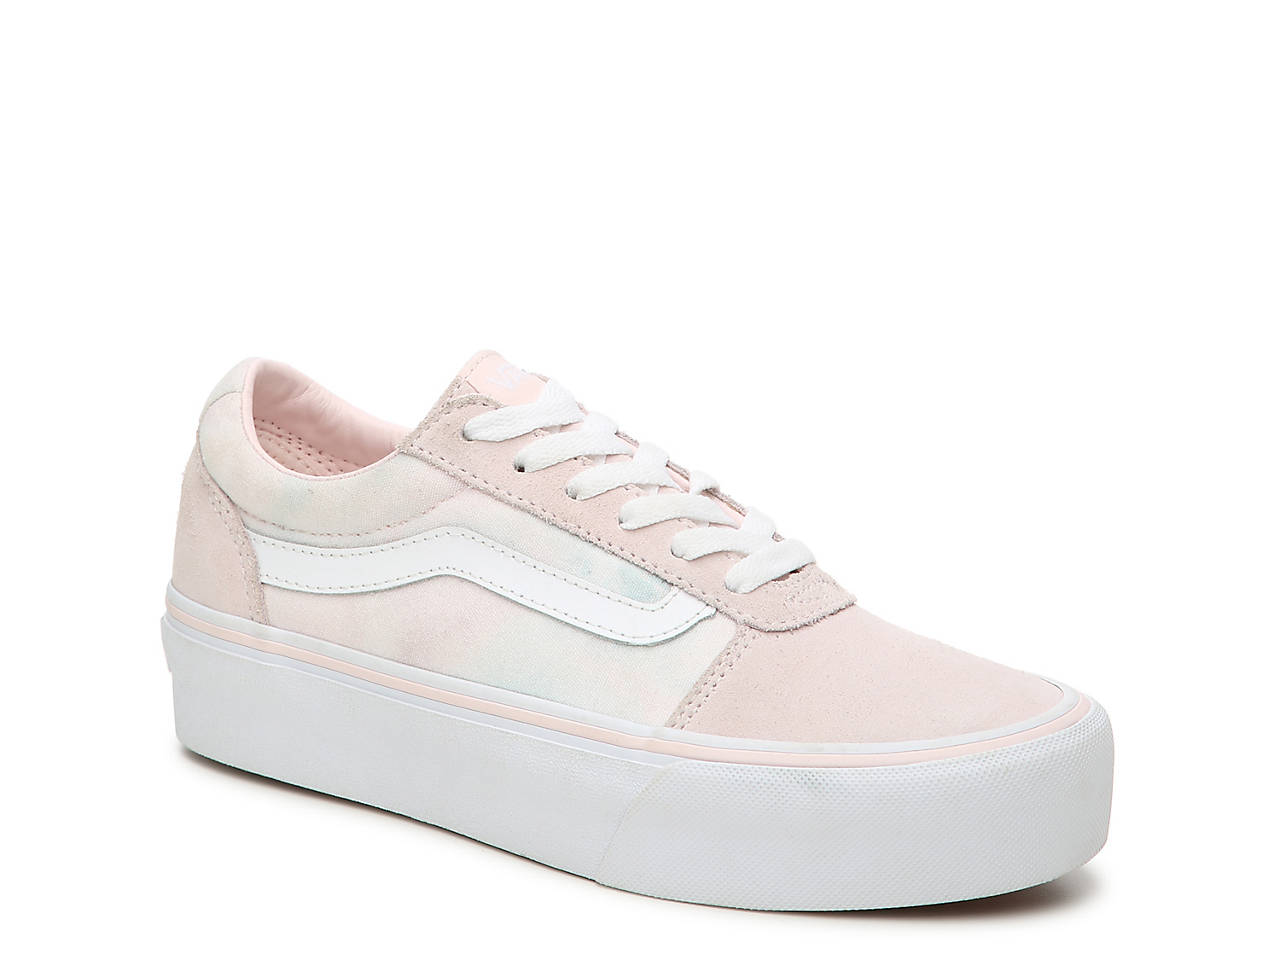 52e39553775 Vans Ward Platform Sneaker - Women s Women s Shoes